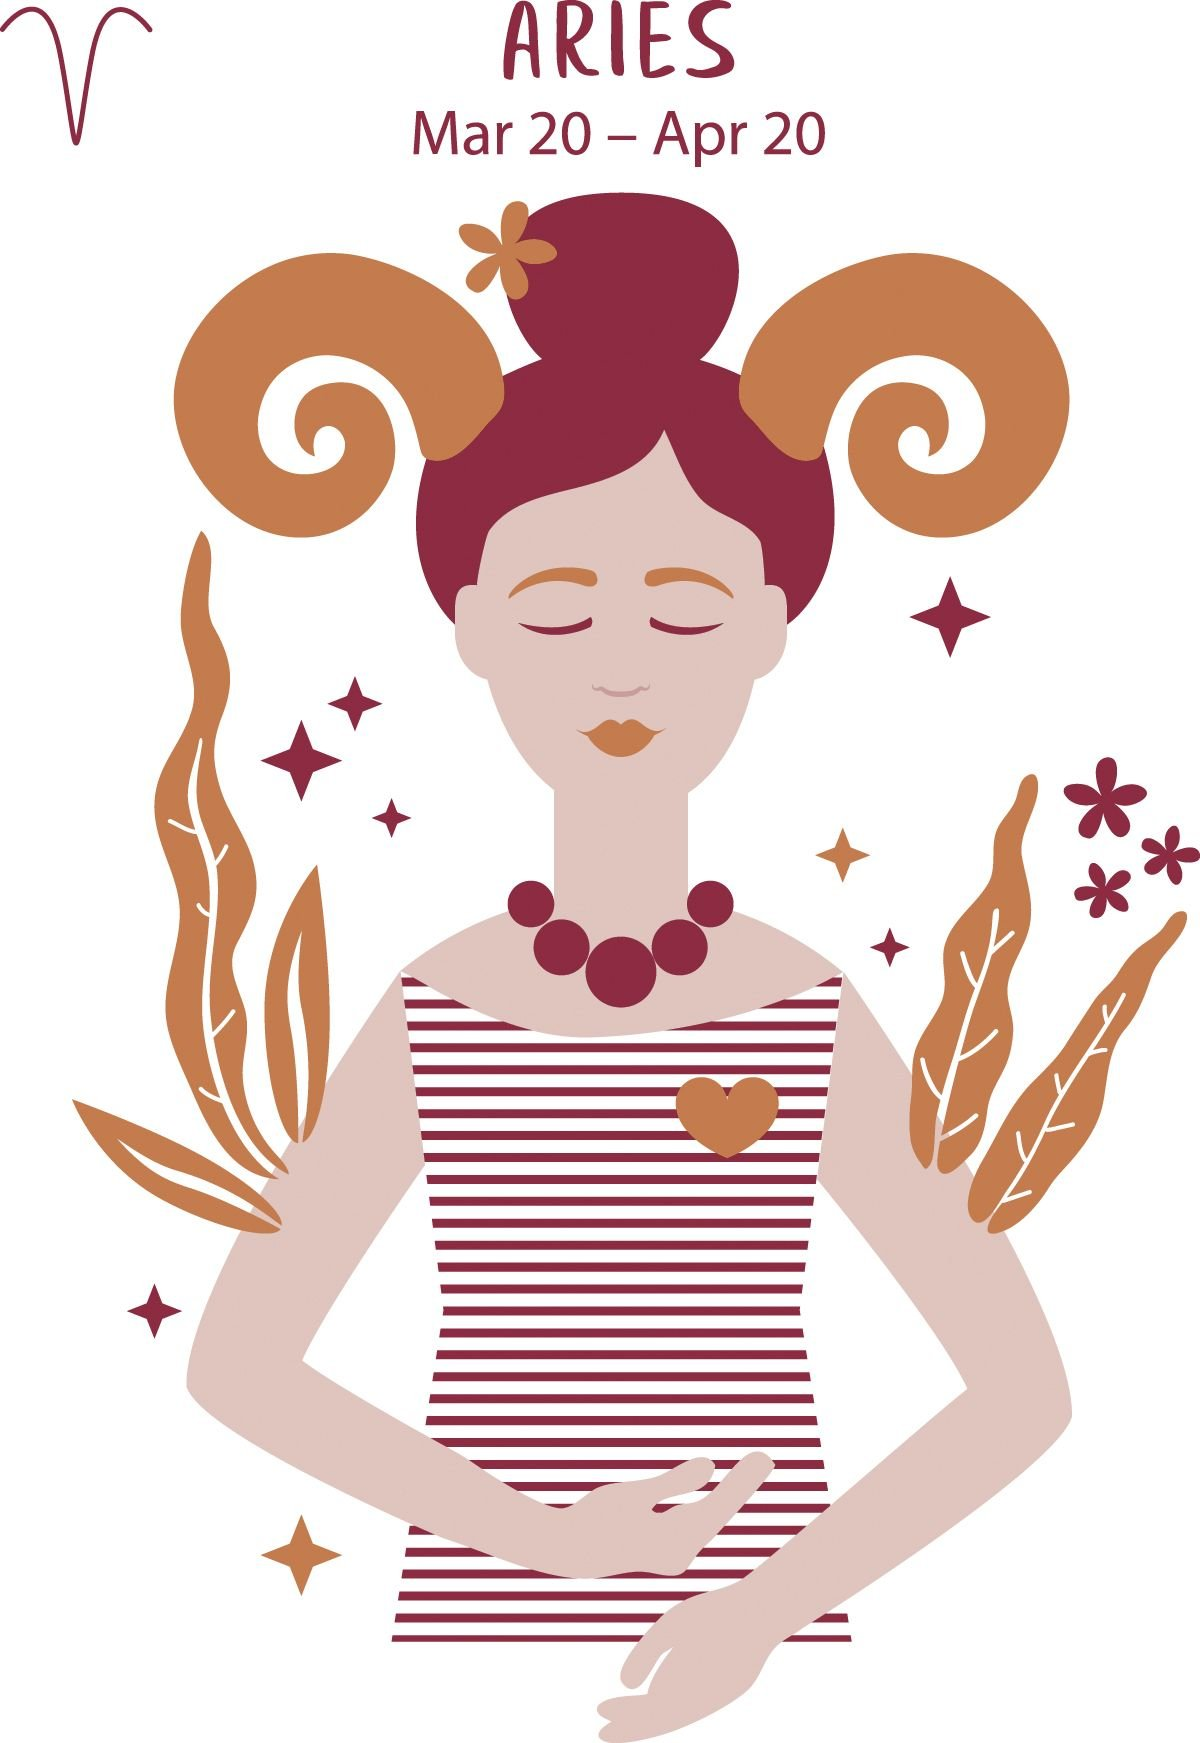 Aries (March 20 to April 20) represented by a horned woman with her eyes closed.